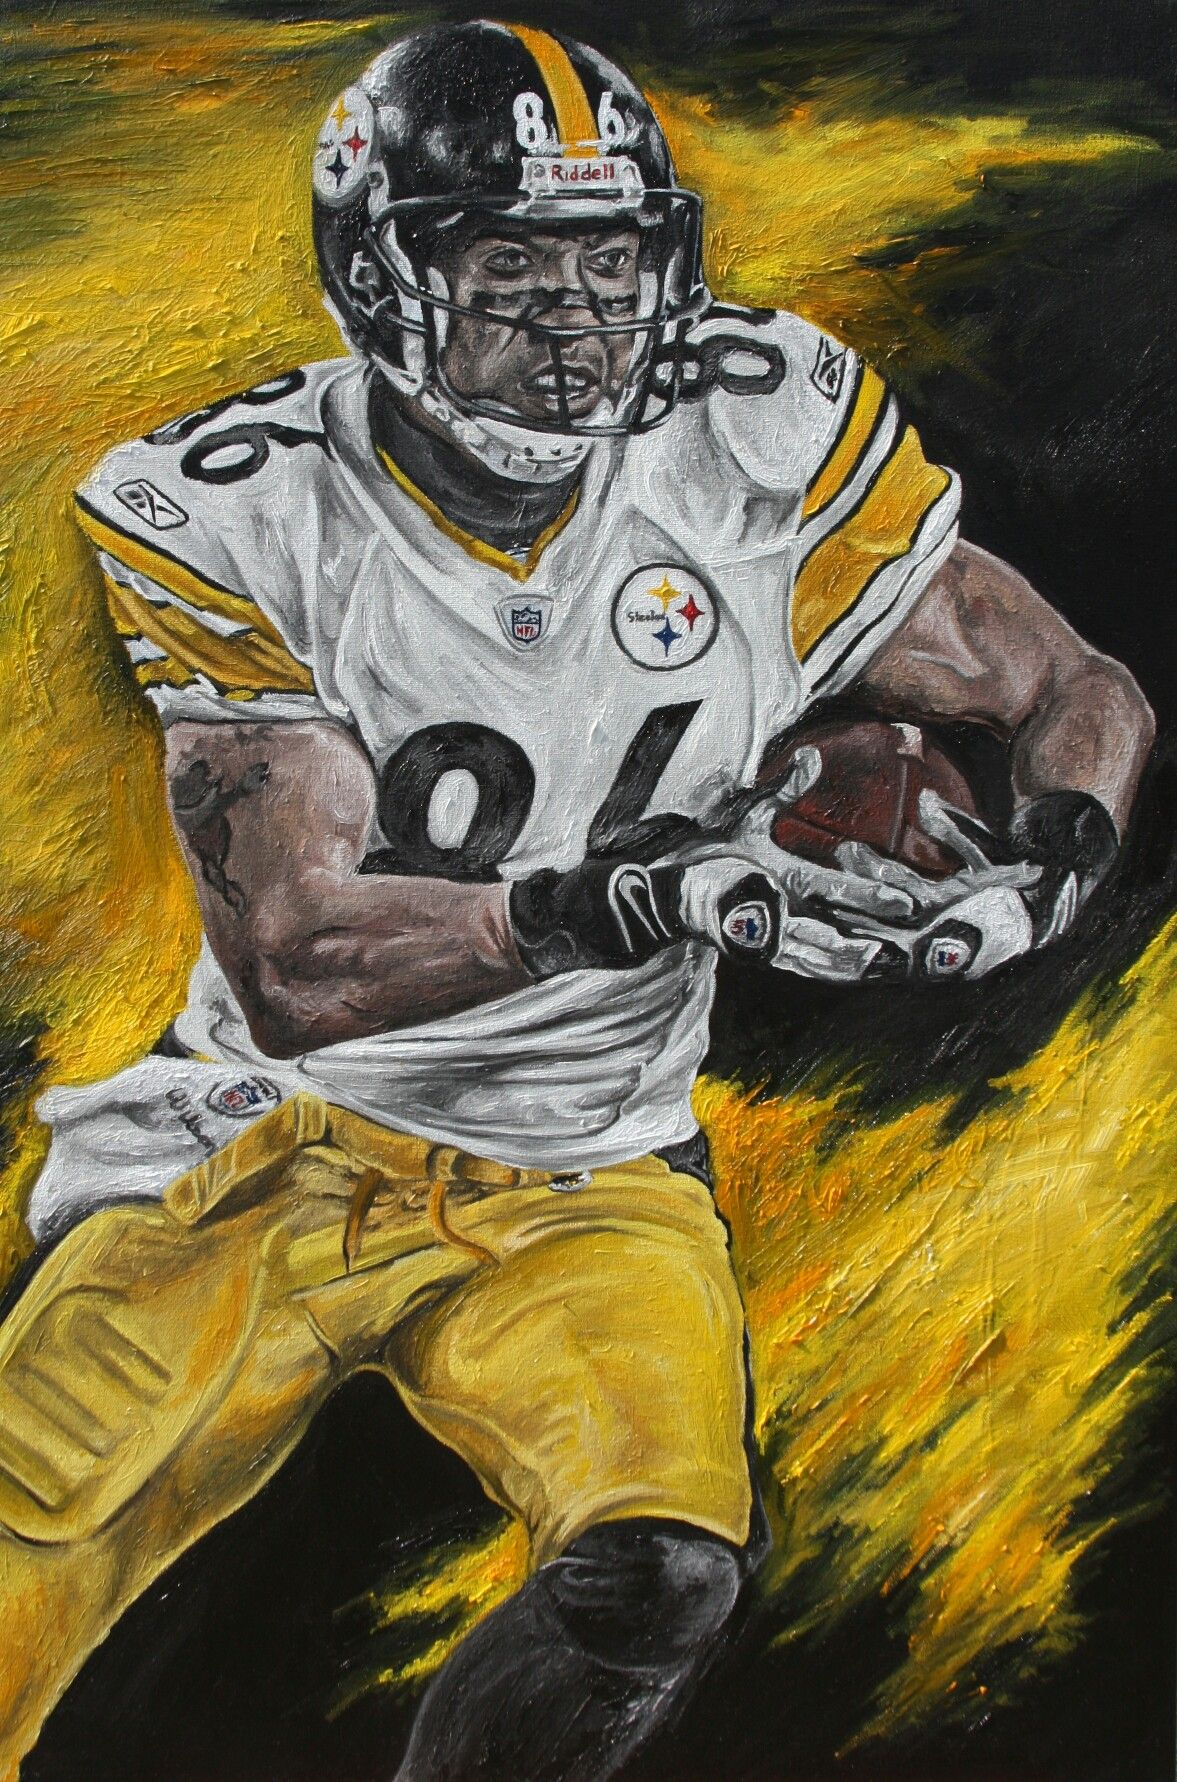 Pin By Marcus Grafton On Steelers Pictures Sports Art Art Game Art